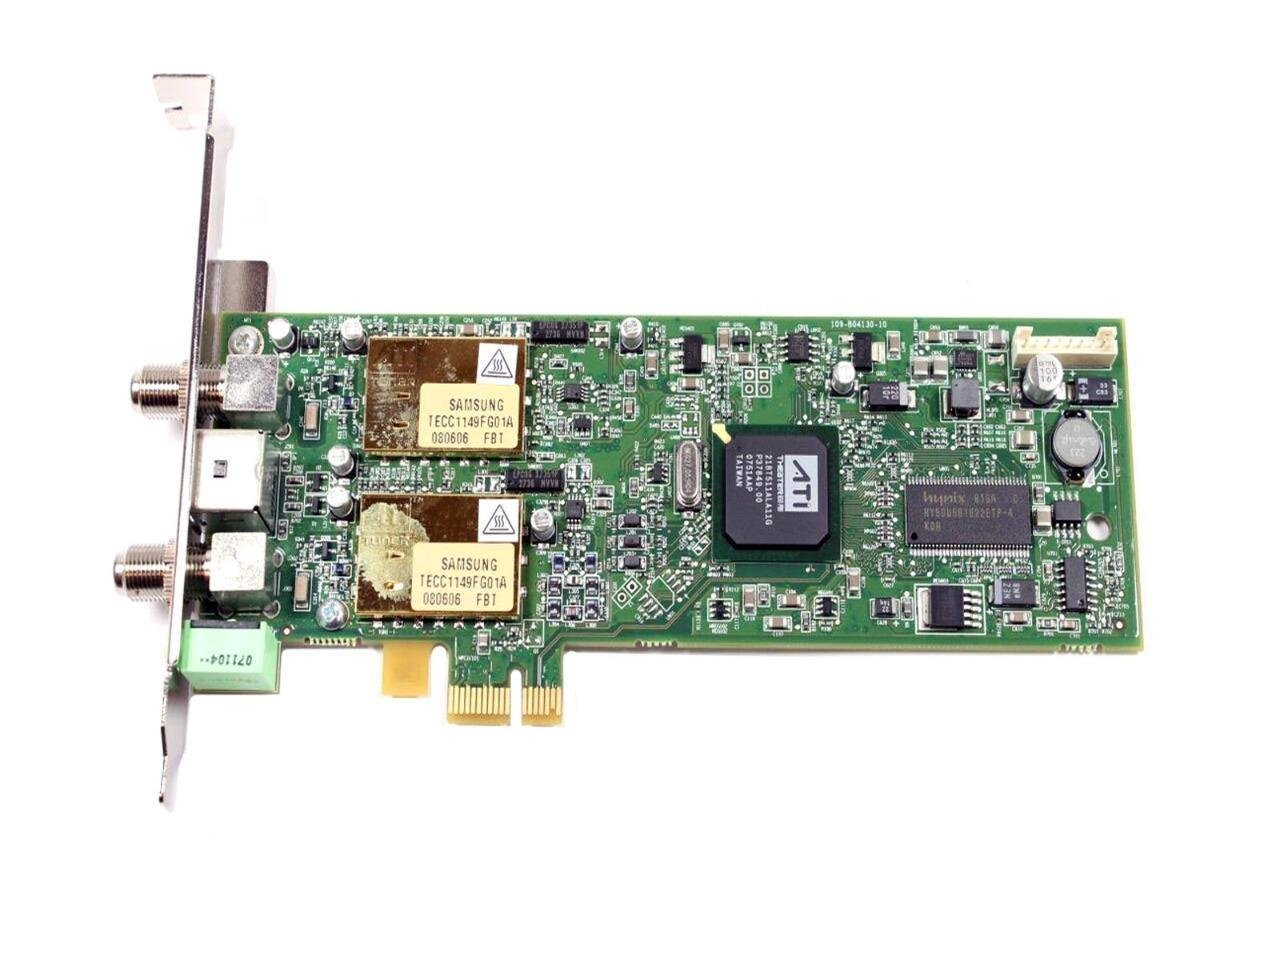 Genuine Dell ATI NW823, DN804 Theater TV Television Wonder HD 650 Combo PCI-Express PCI-E Full Height TV Tuner Card Compatible Part Numbers: NW823, DN804 Compatible Model Numbers: B041, CN-0NW823, ATI-102-B041(B)